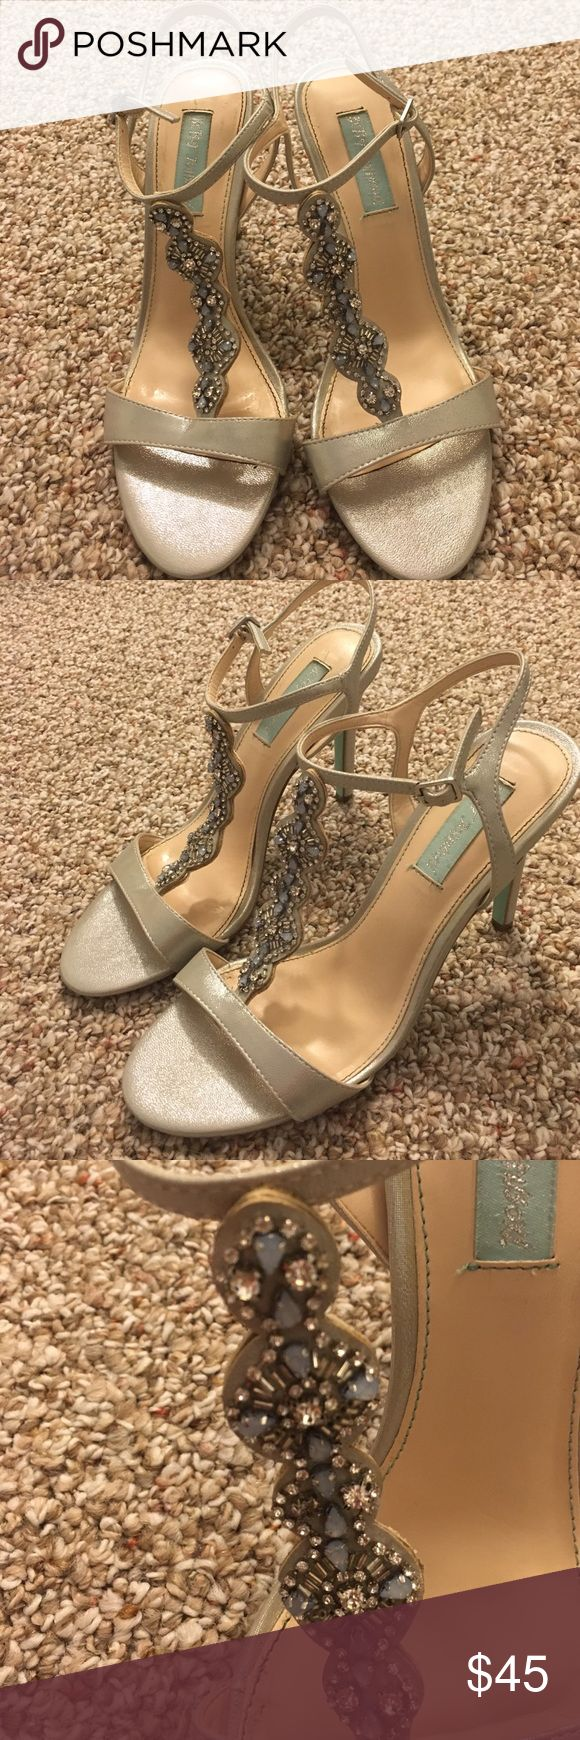 Betsey Johnson Chloe Sandal size 9 Betsey Johnson Chloe Sandal size 9. Beautiful beading details. Gently worn once for my sisters wedding. Betsey Johnson Shoes Heels